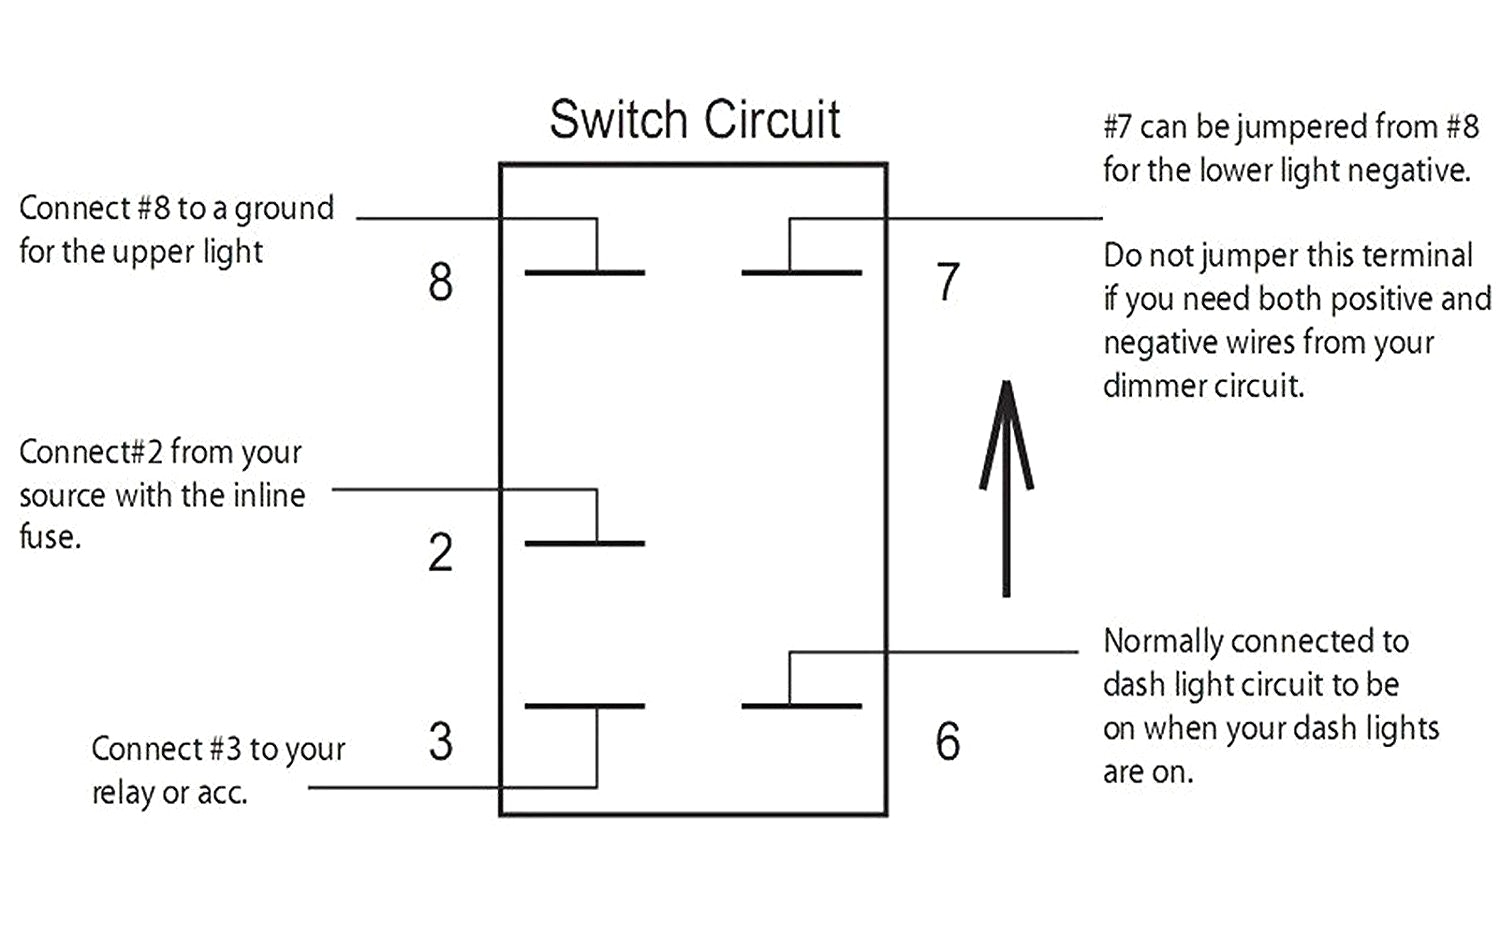 carling toggle switch wiring diagram Collection-Carling Technologies Rocker Switch Wiring Diagram Elegant toggle Switch Wiring Diagram 12v Fitfathers 13-r